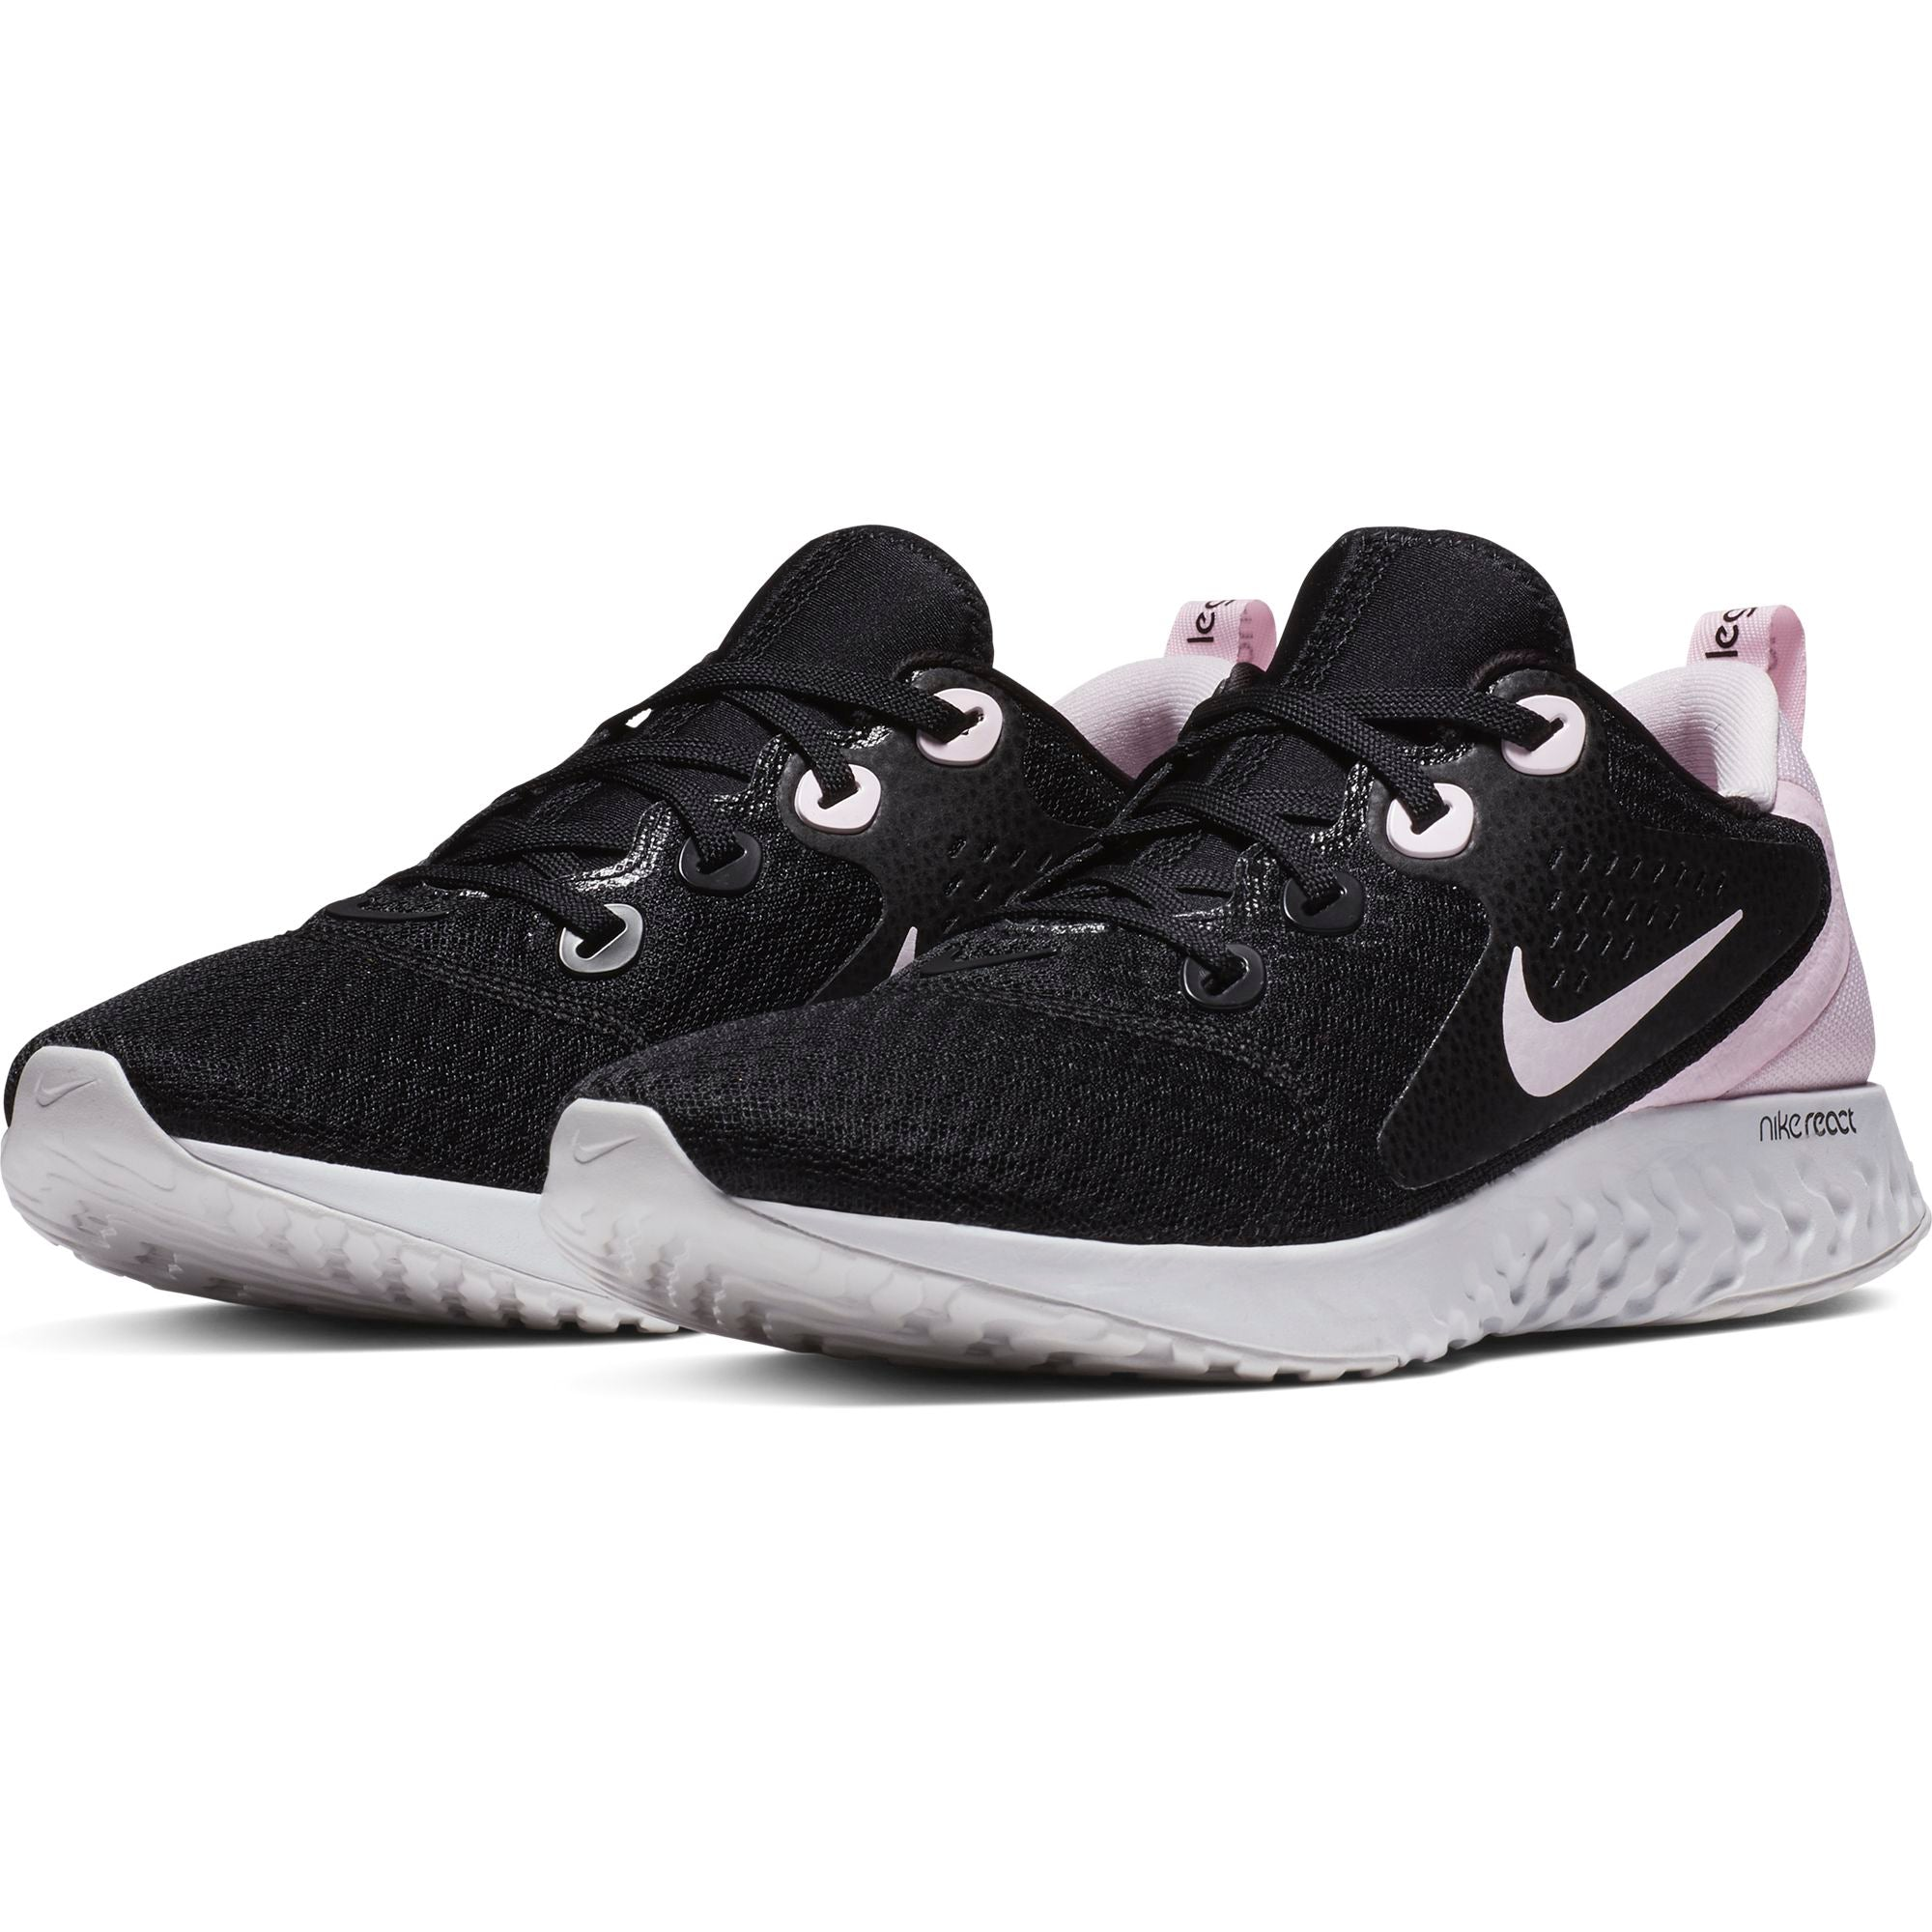 promo code 57afc 21ab6 Nike Womens Legend React Running Shoe, BlackPink Foam-Vast Grey - First  Clothing